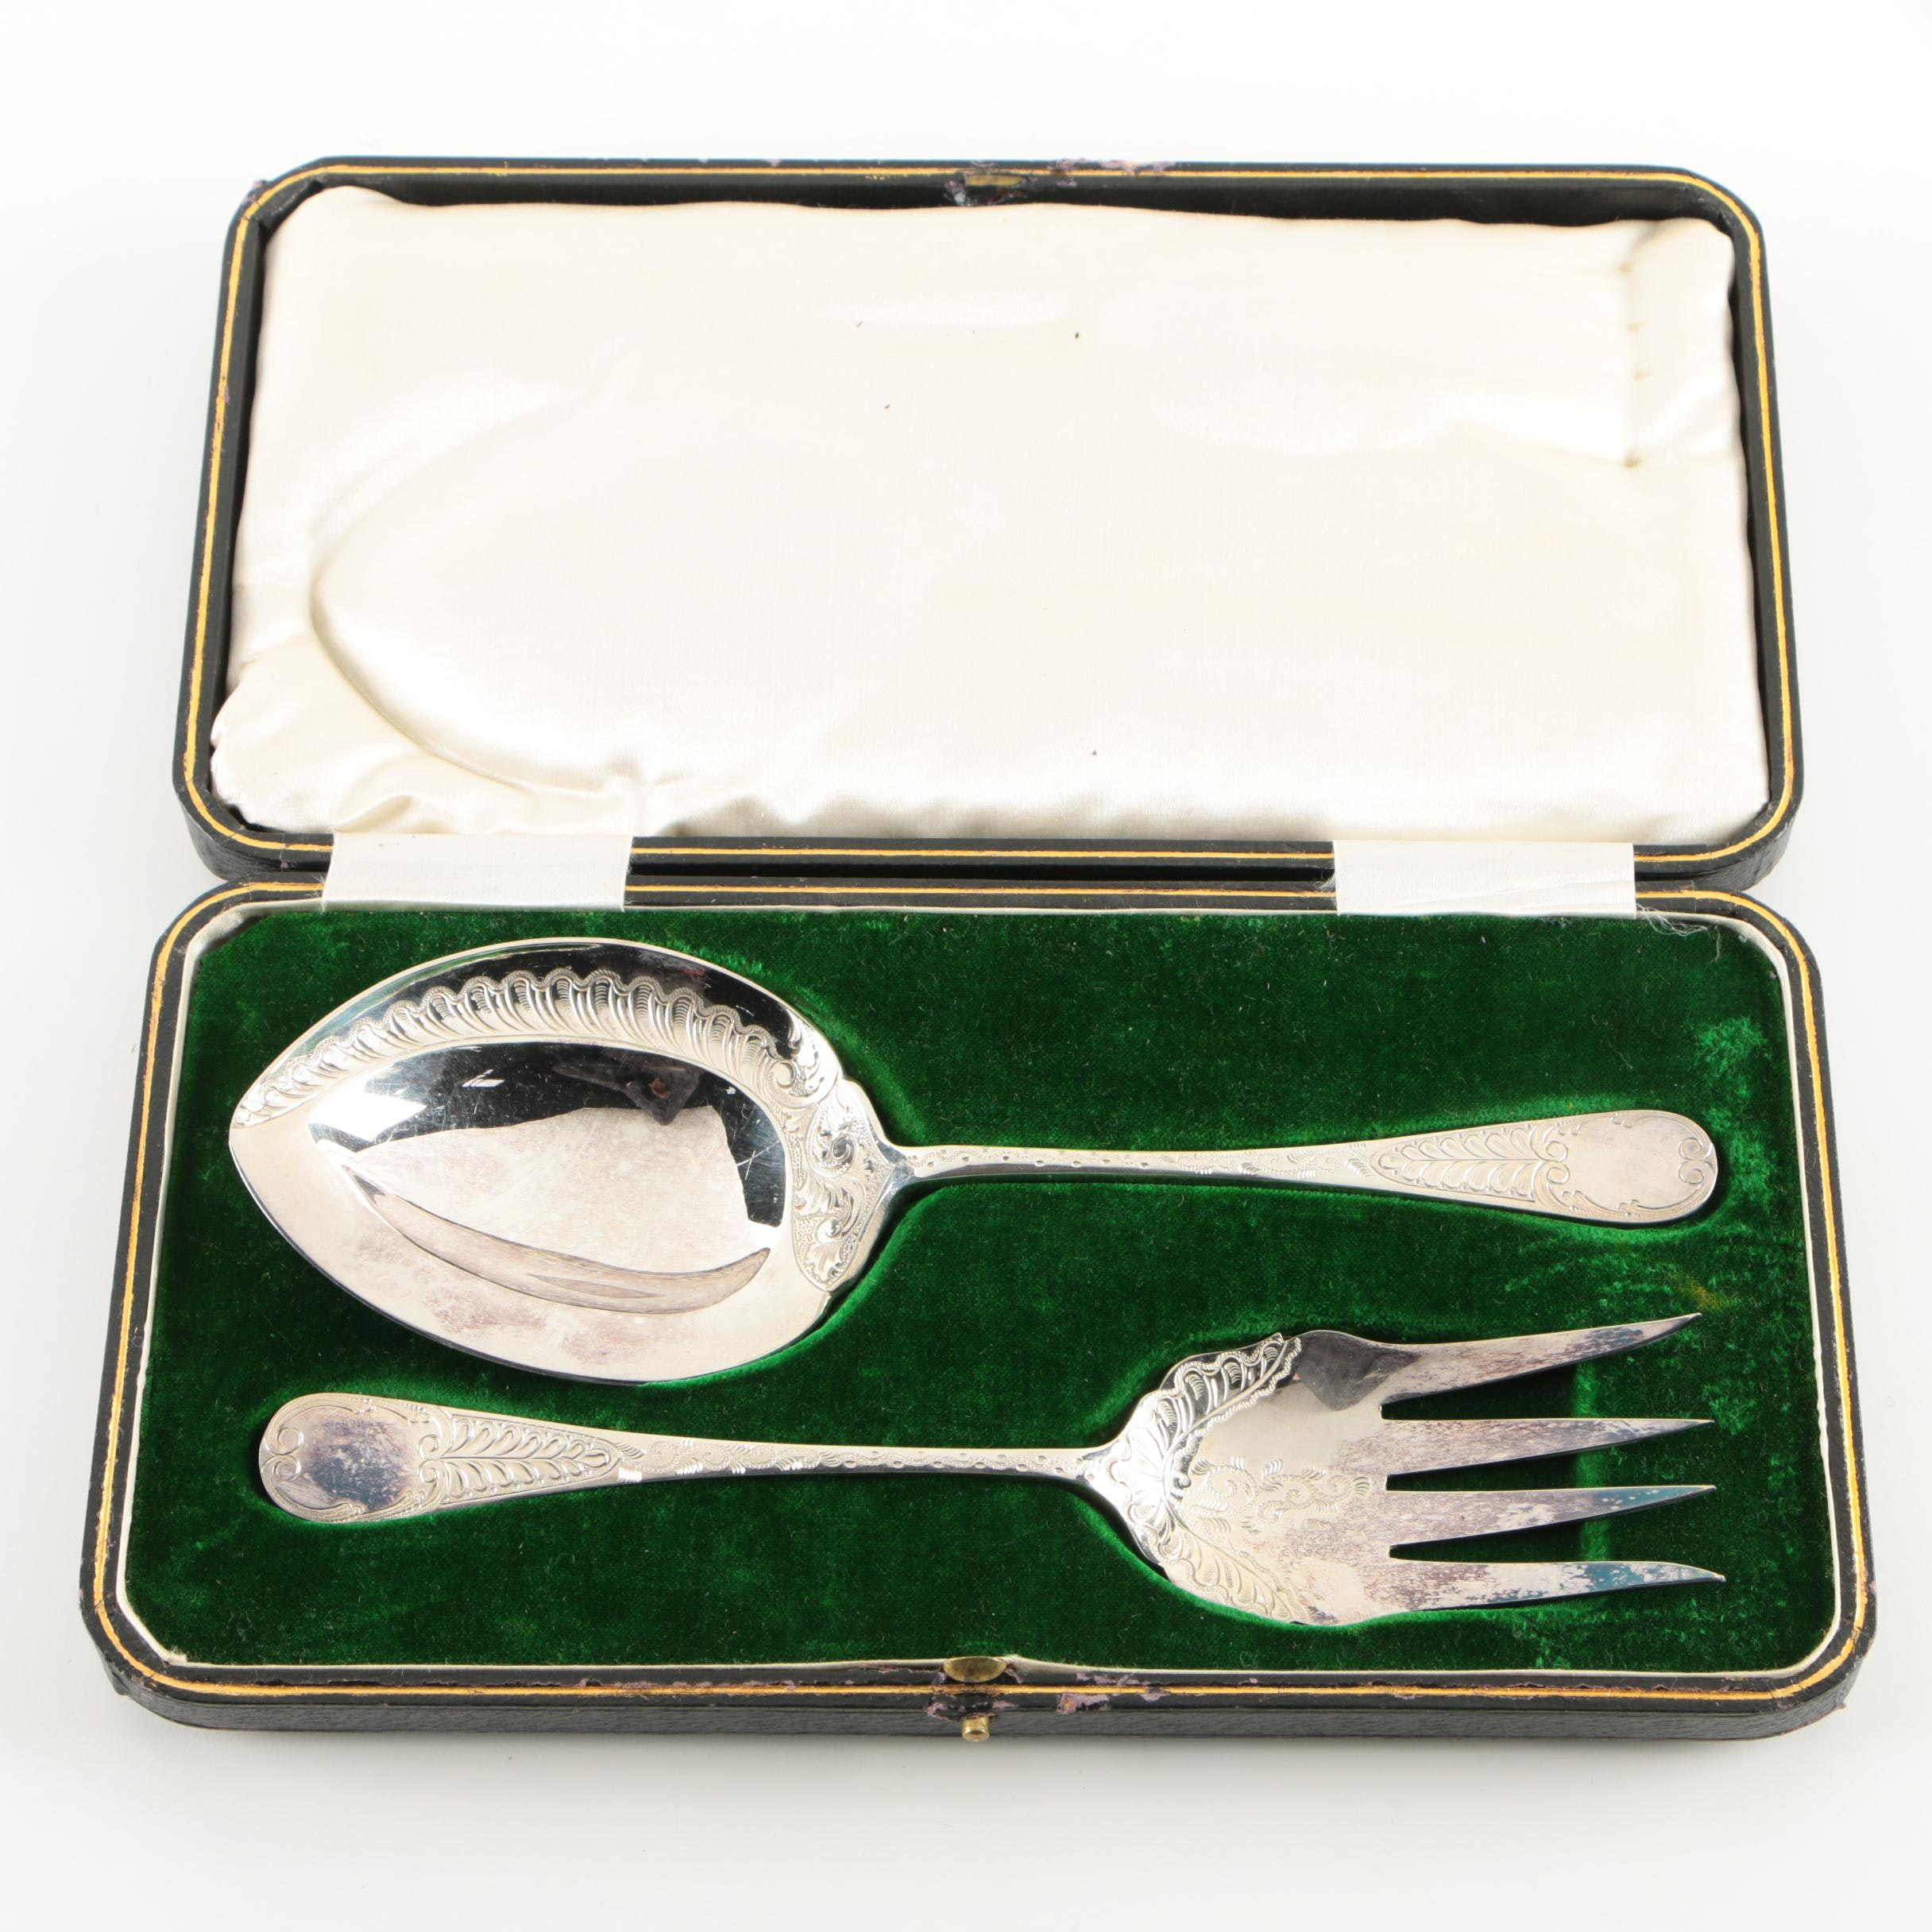 Frederick C. Asman & Co Silver Plate Serving Set, Early 20th Century